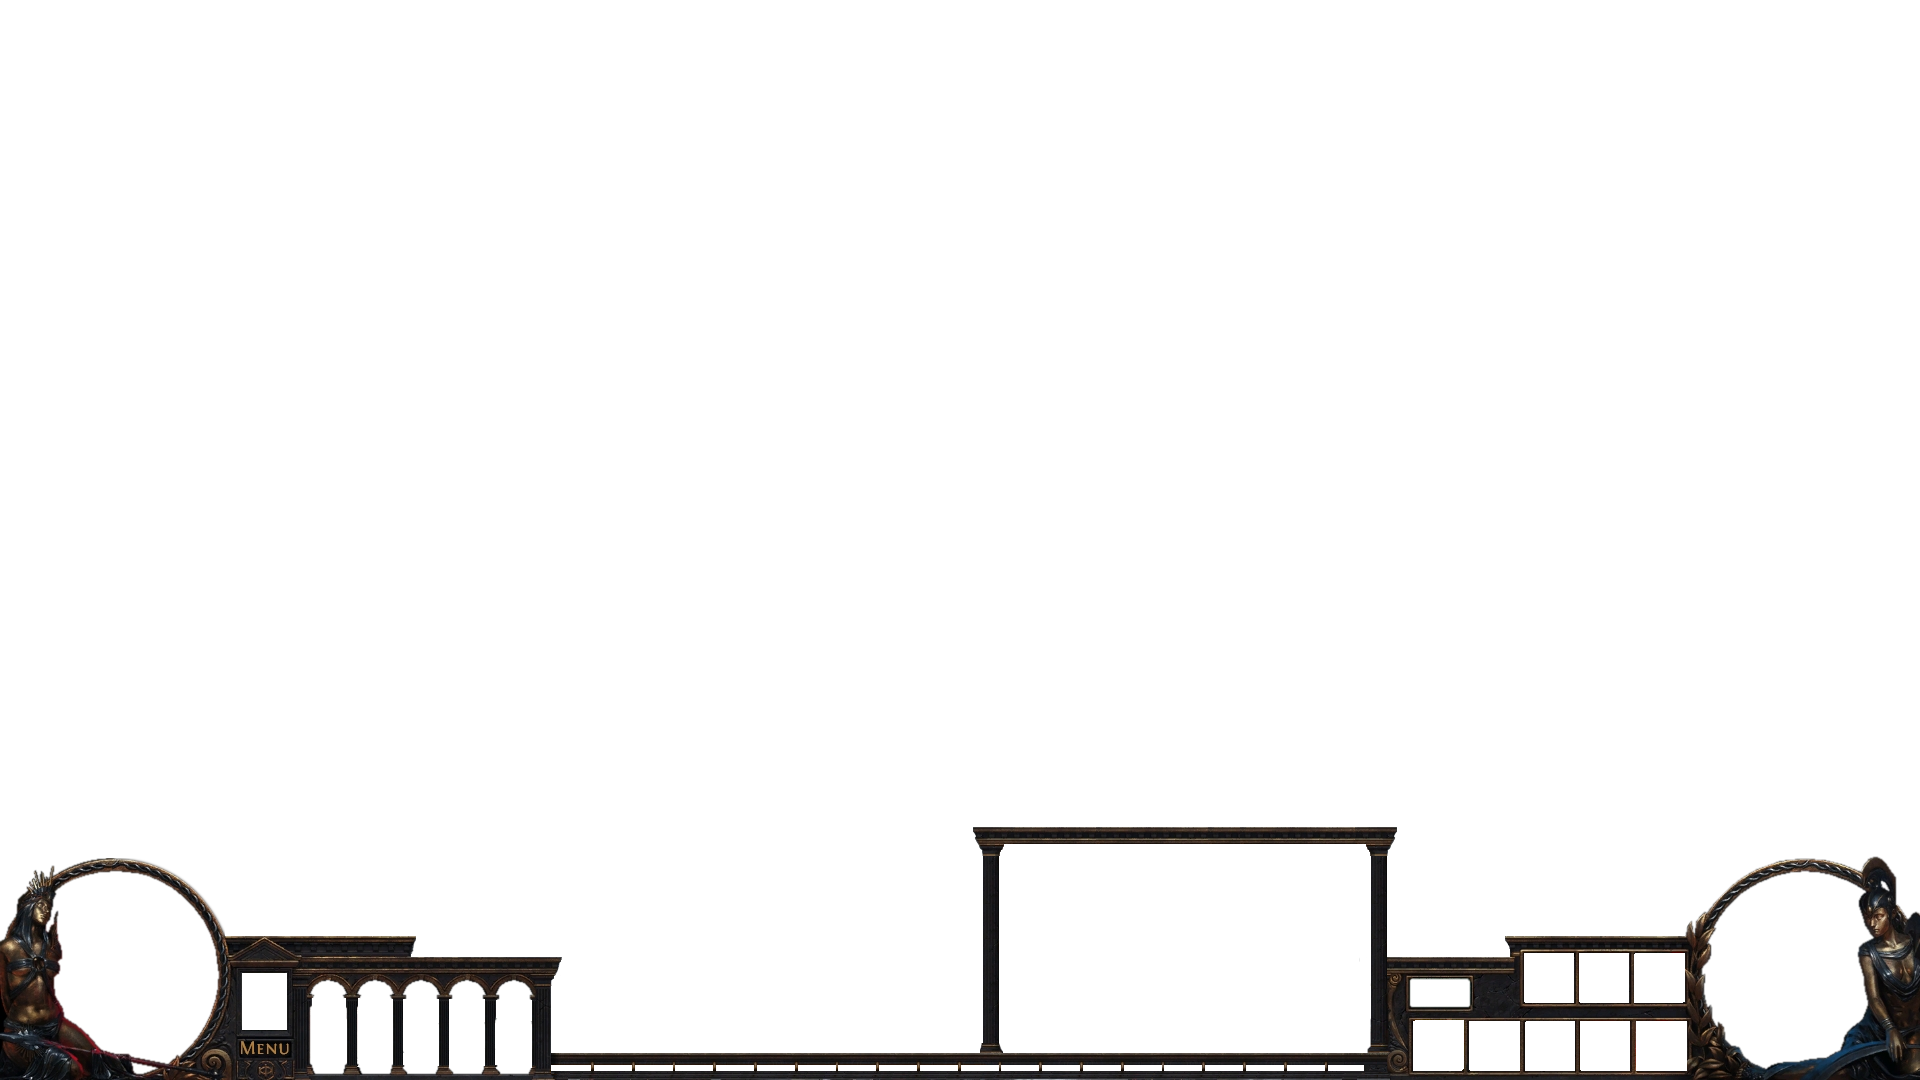 Webcam border overlay png. Stream with new ui